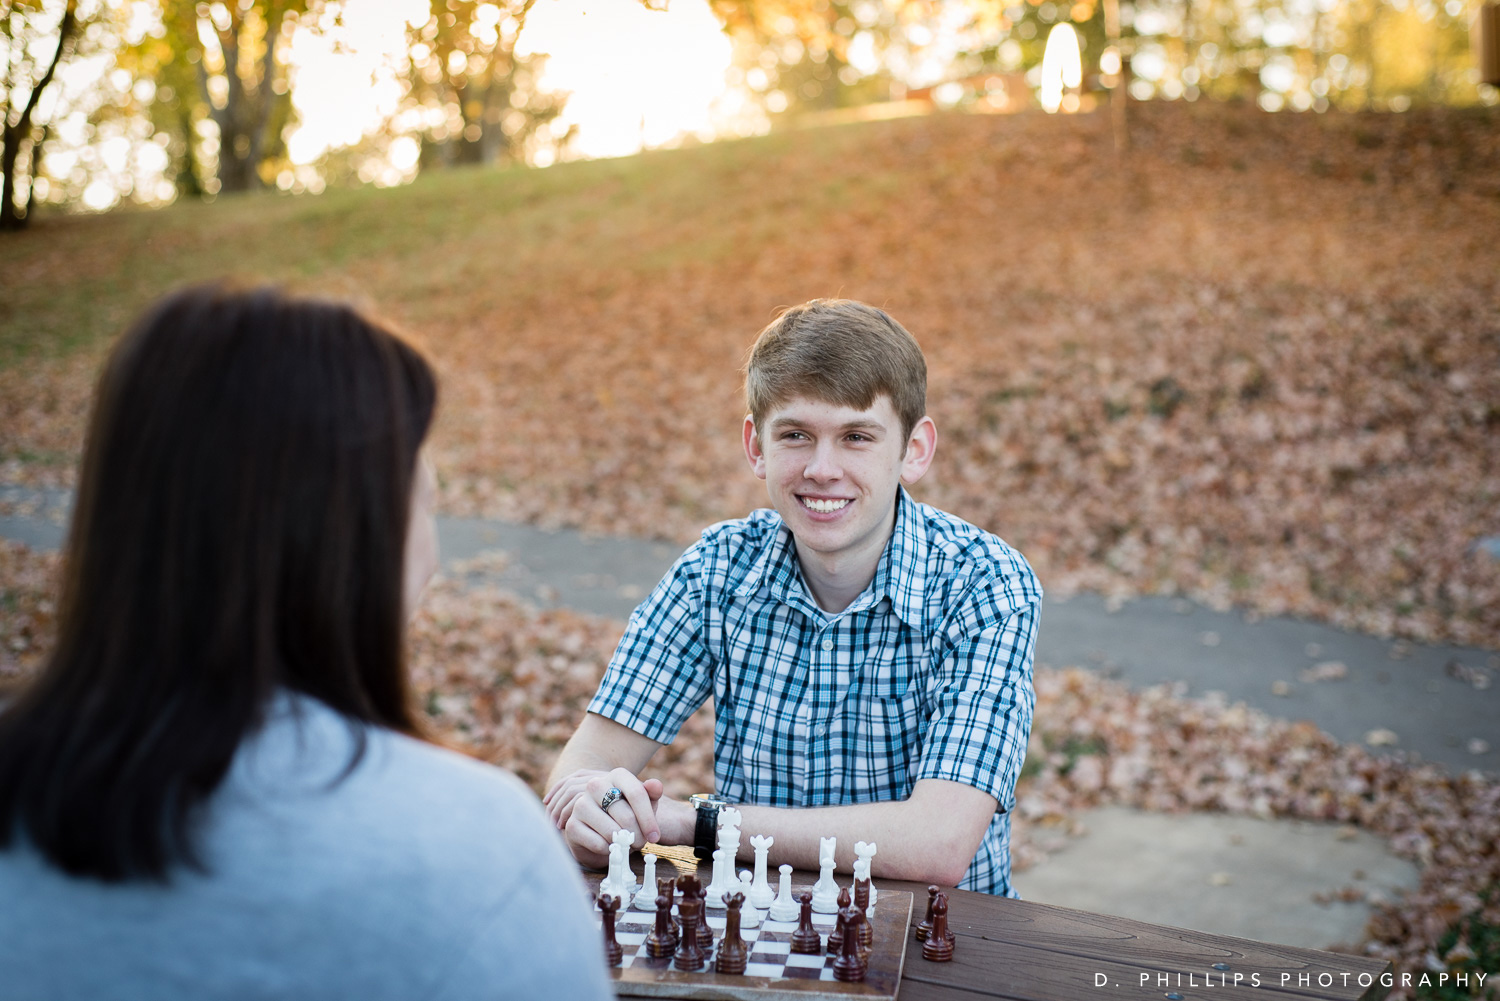 Lifestyle senior photos  , Clarksville TN & Fort Campbell KY | D. Phillips Photography |www.dphillipsphotography.com